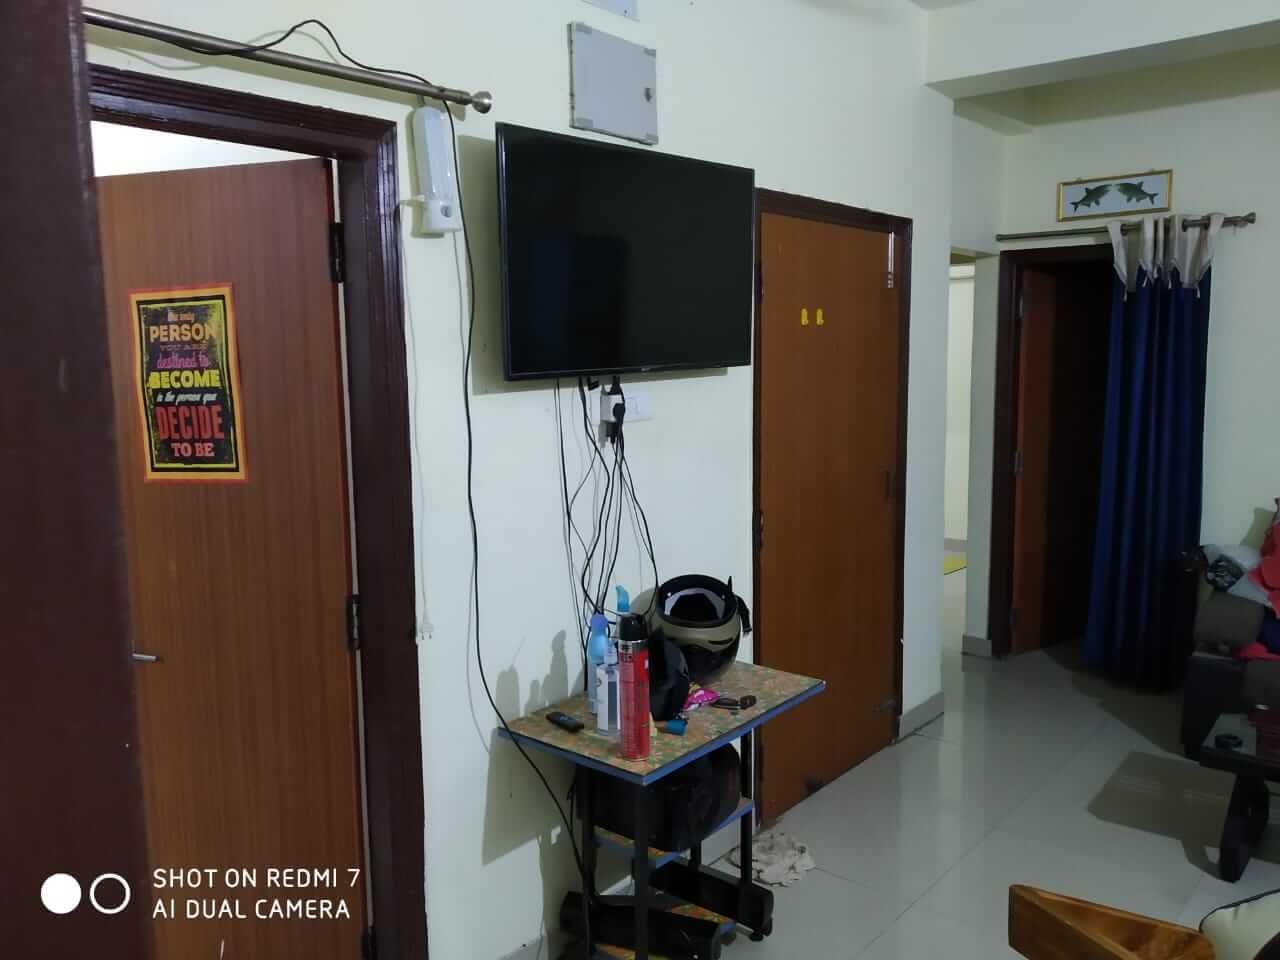 Independent House for Rent 950 Sq. Feet at Bhubaneswar